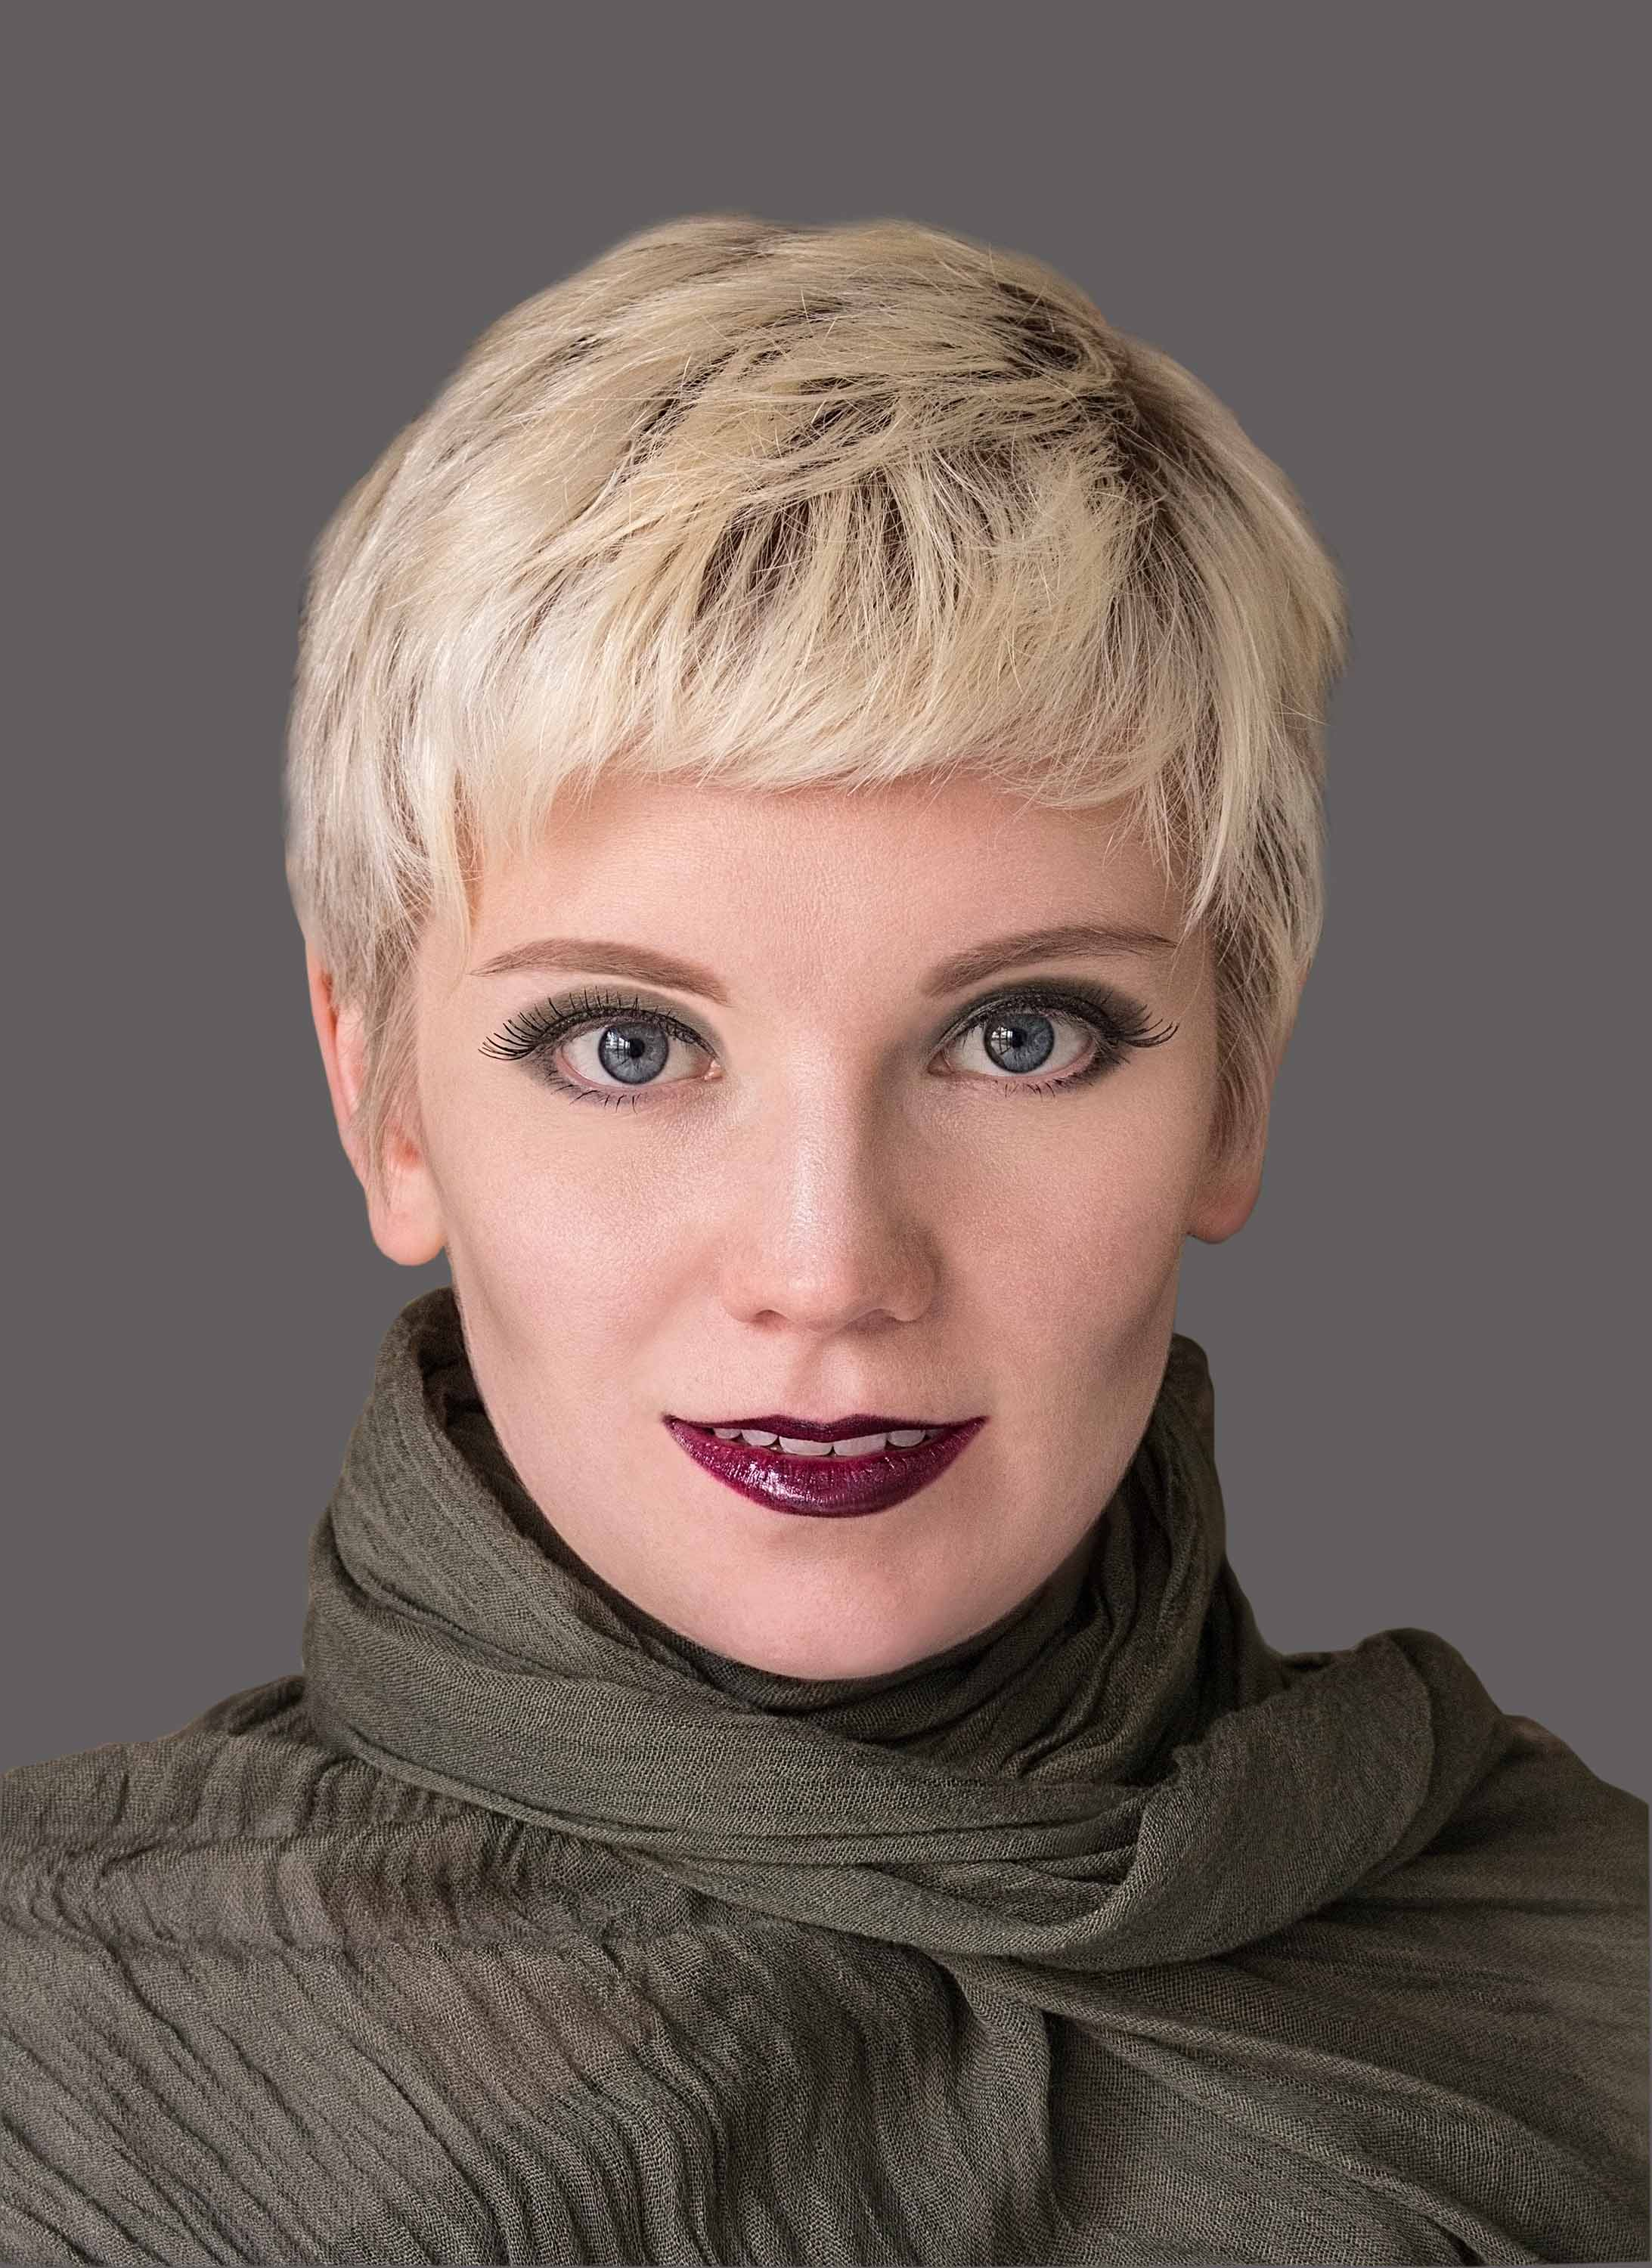 Uber Chic Haircuts For Women Of All Ages All Things Hair Uk